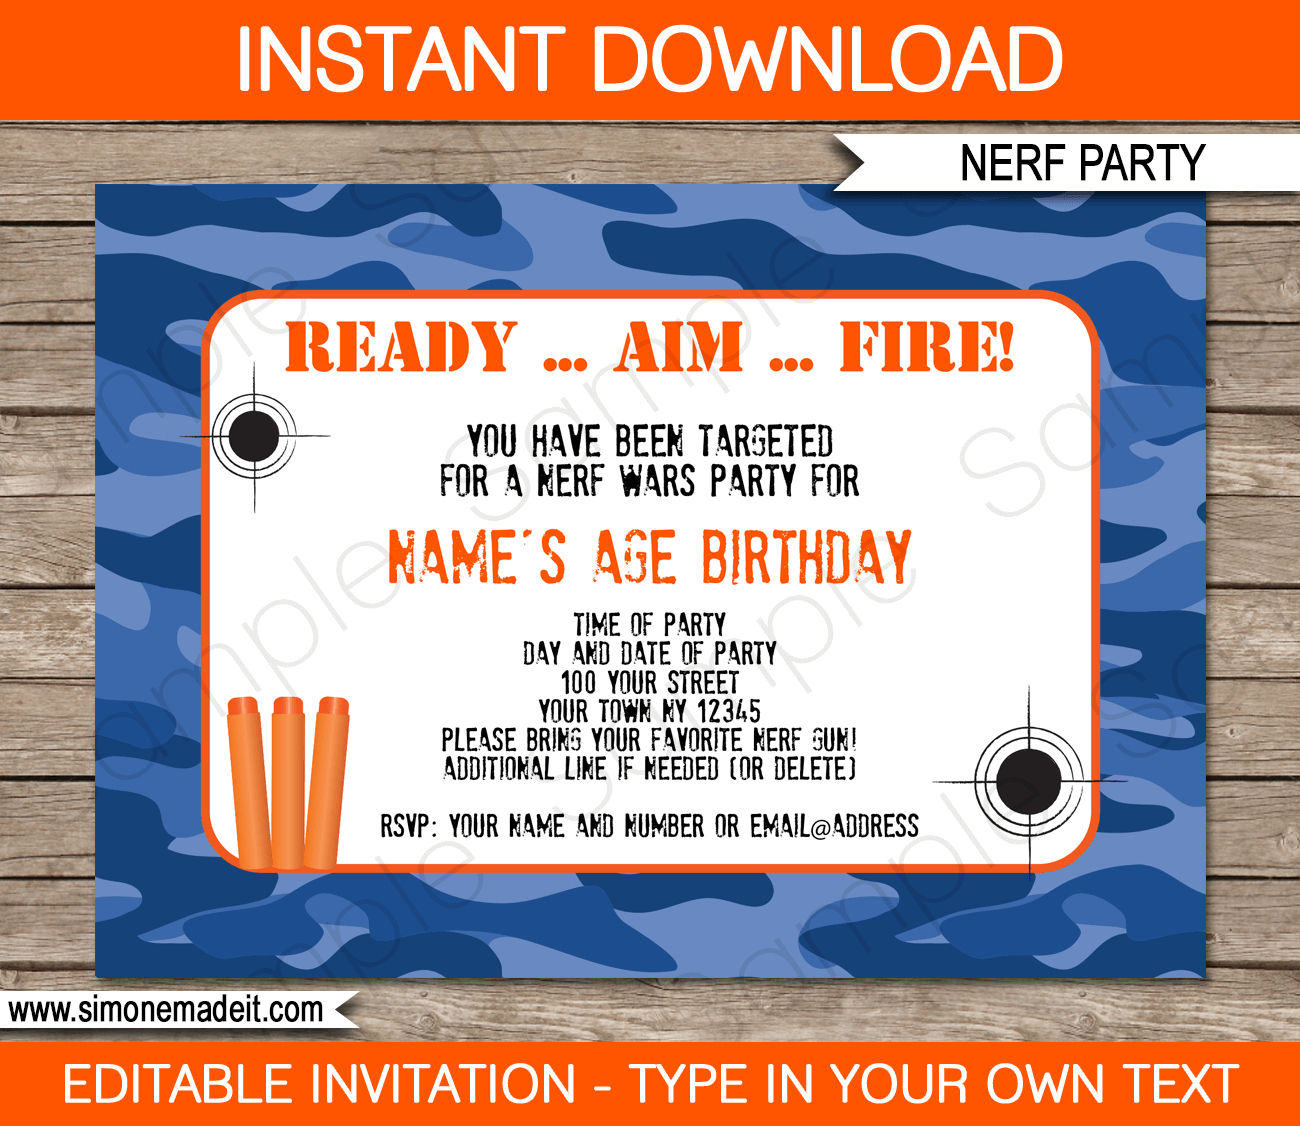 Nerf Birthday Party Invitations Editable Template Blue Camo Within Size 1300 X 1126